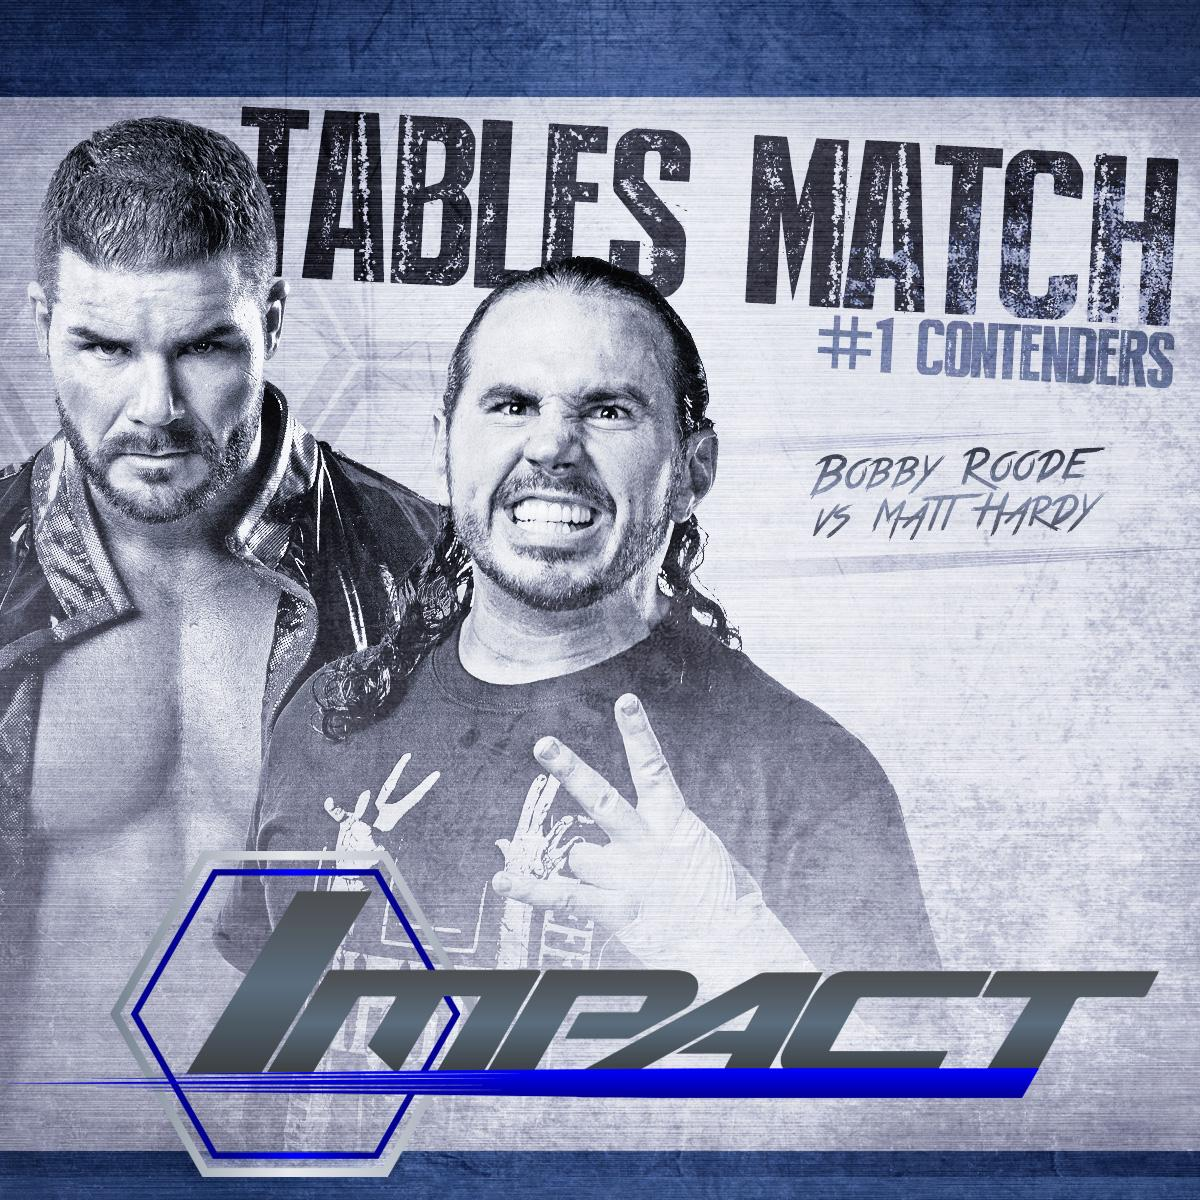 TONIGHT at 9pm @MATTHARDYBRAND vs @REALBobbyRoode in a TABLES match #thisisawesome @IMPACTWRESTLING http://t.co/EjwWksyLmt